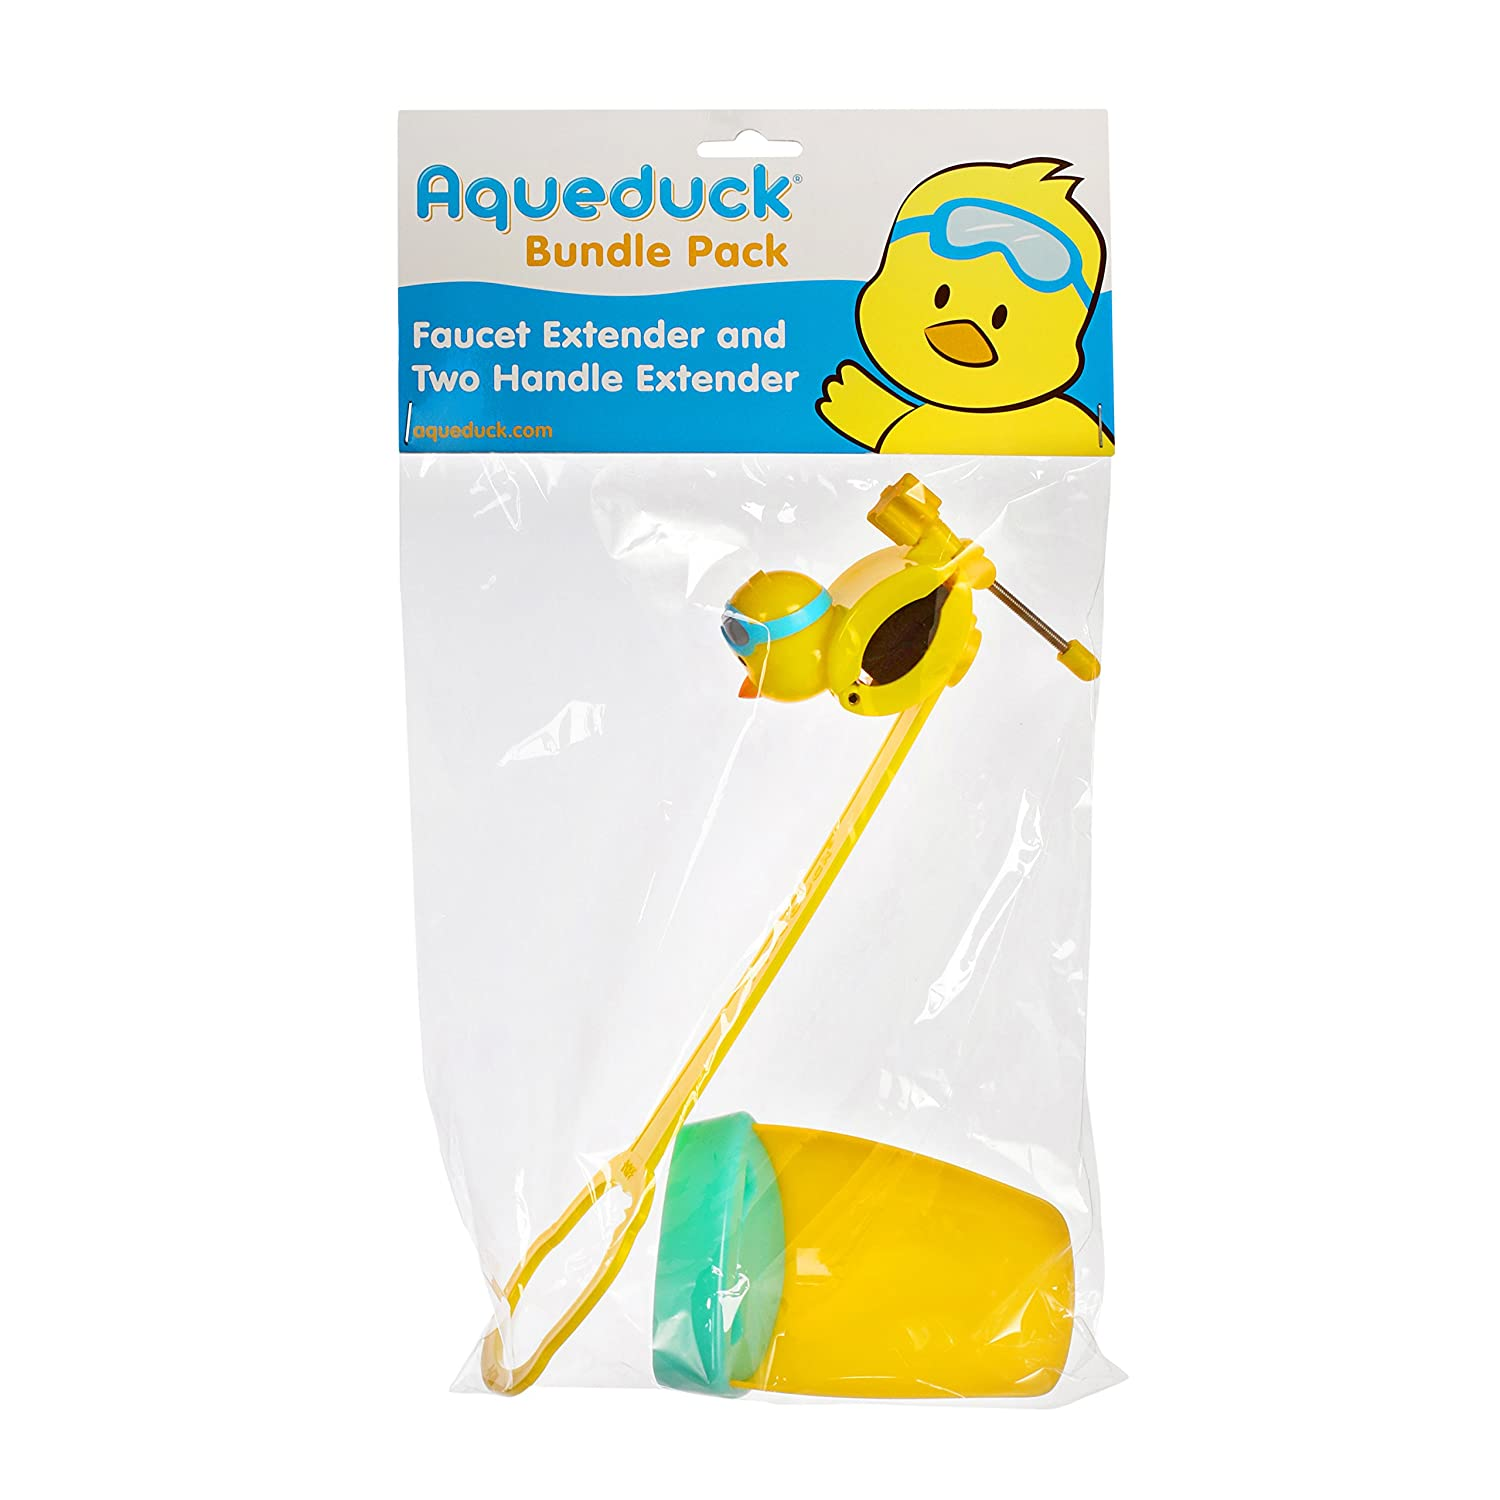 Amazon.com : Aqueduck Faucet Extender - Sink Handle Extender, Safe ...